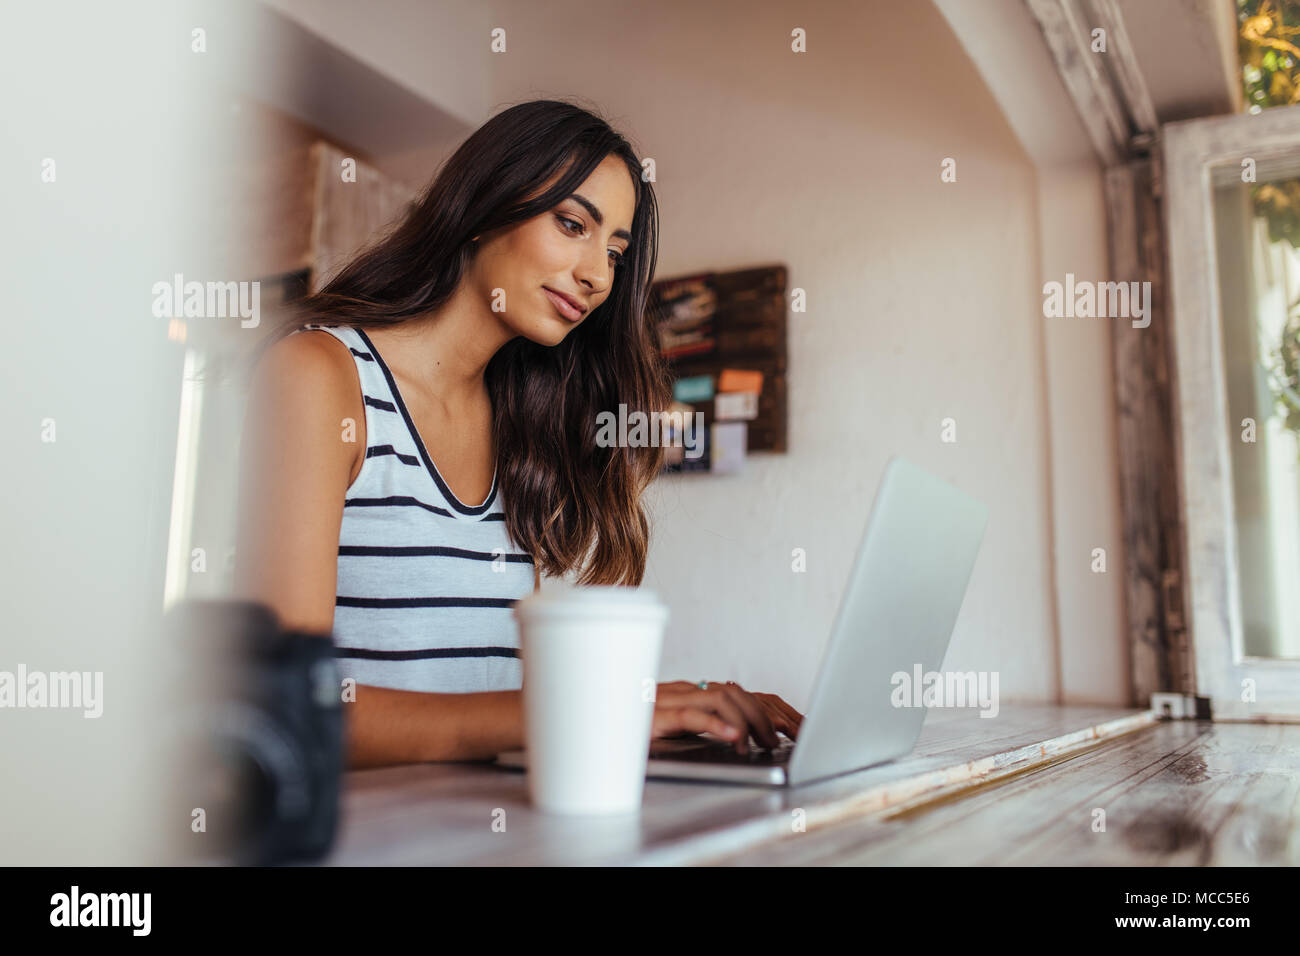 Woman blogger using laptop at home. Woman sitting with coffee glass and camera on the table working on her laptop computer. - Stock Image